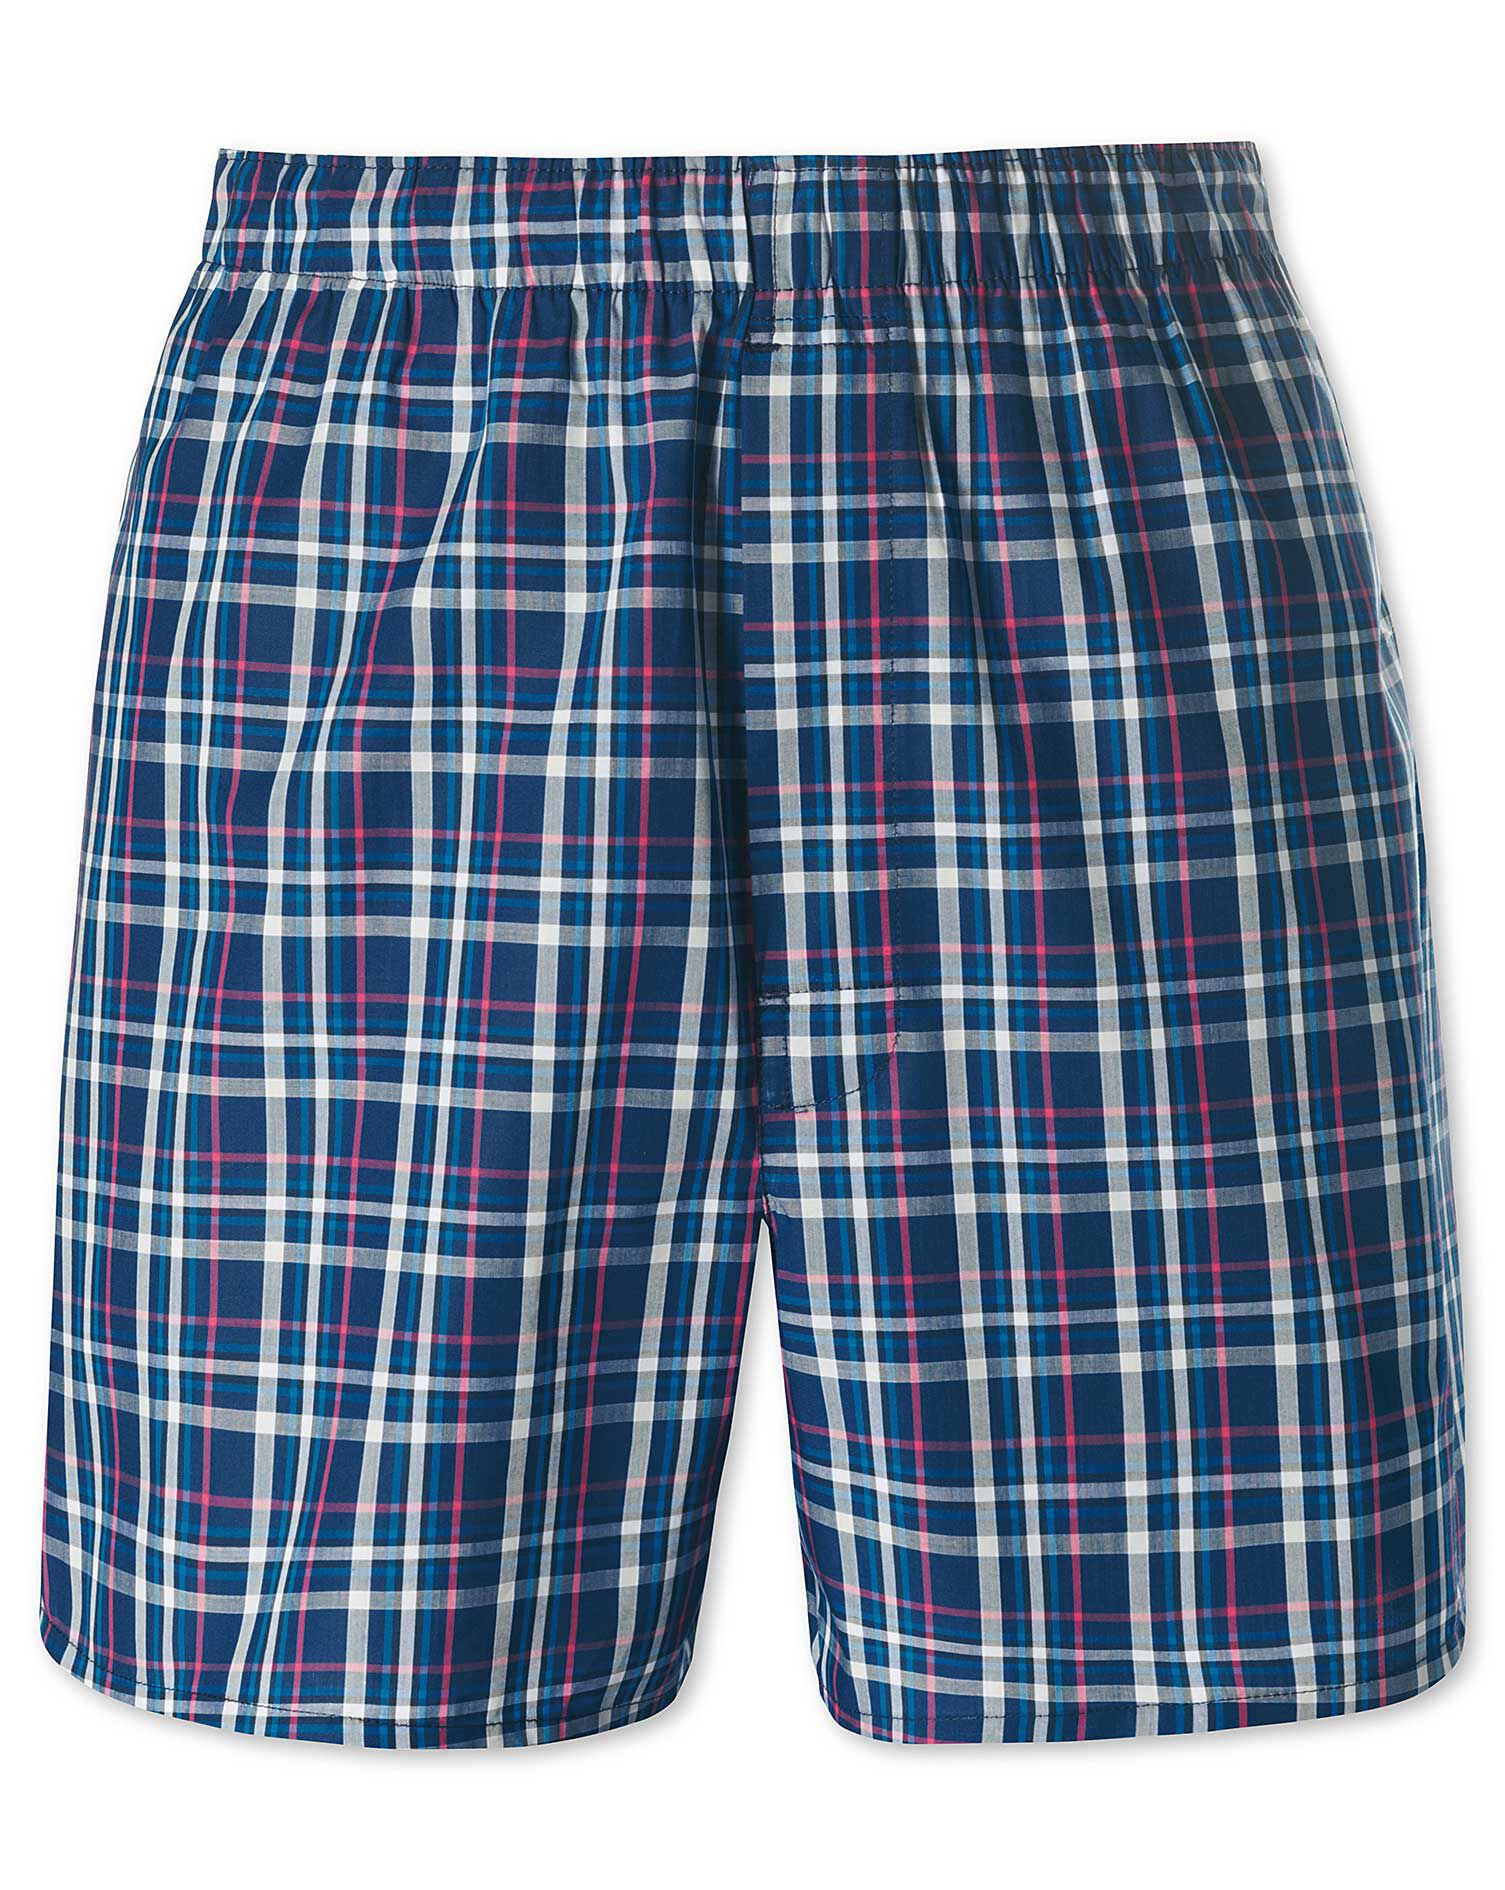 Royal Tartan Woven Boxers Size Medium by Charles Tyrwhitt